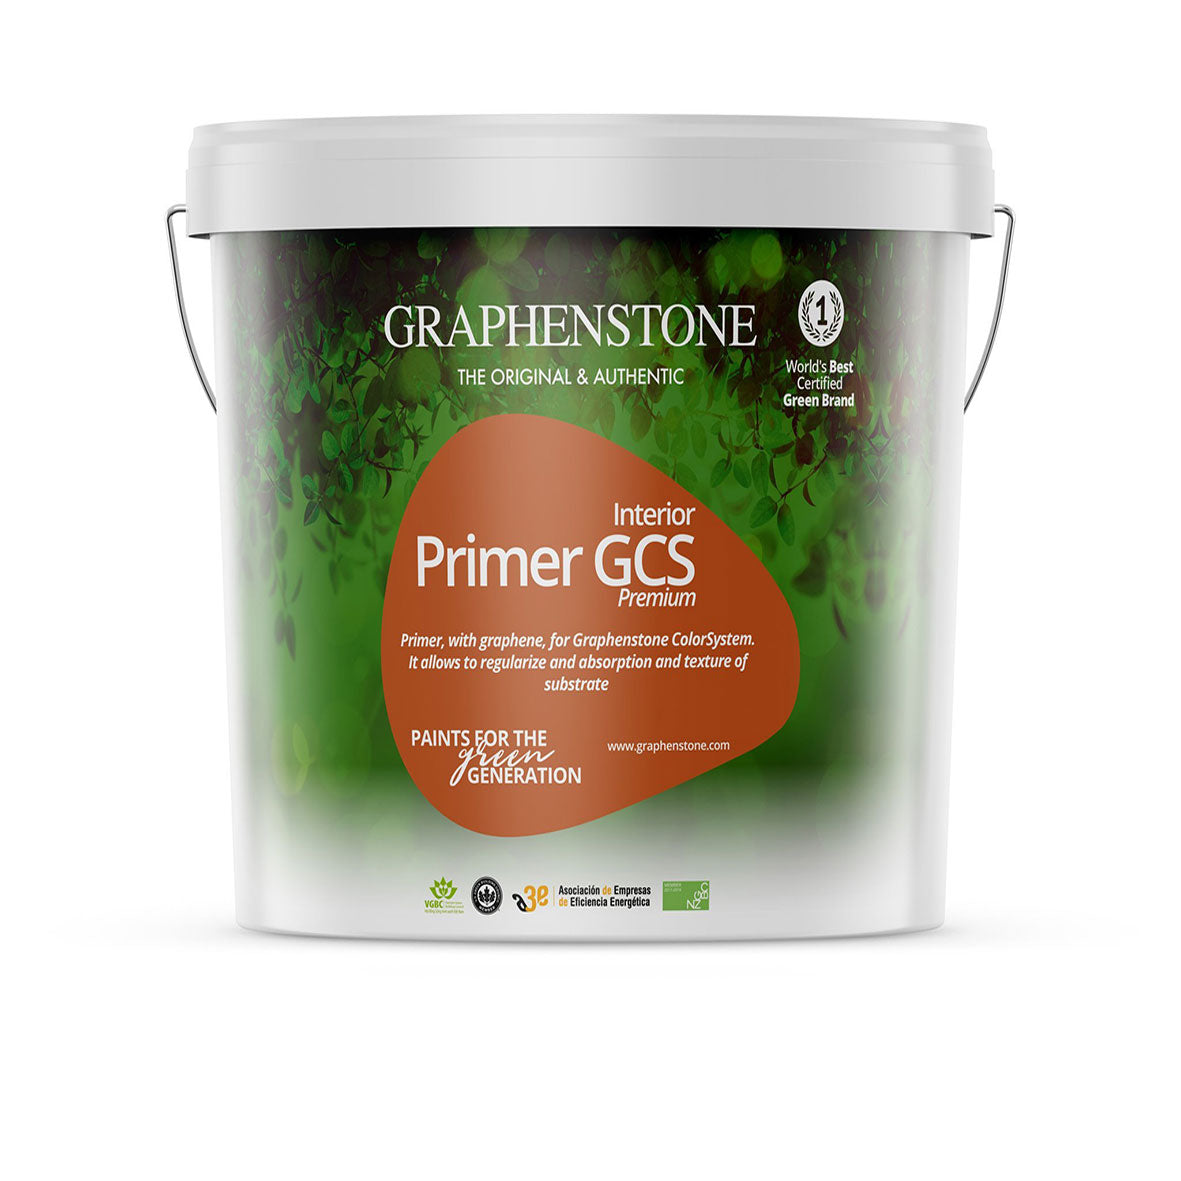 GCS Interior - traditional lime and mineral primer for GCS paints